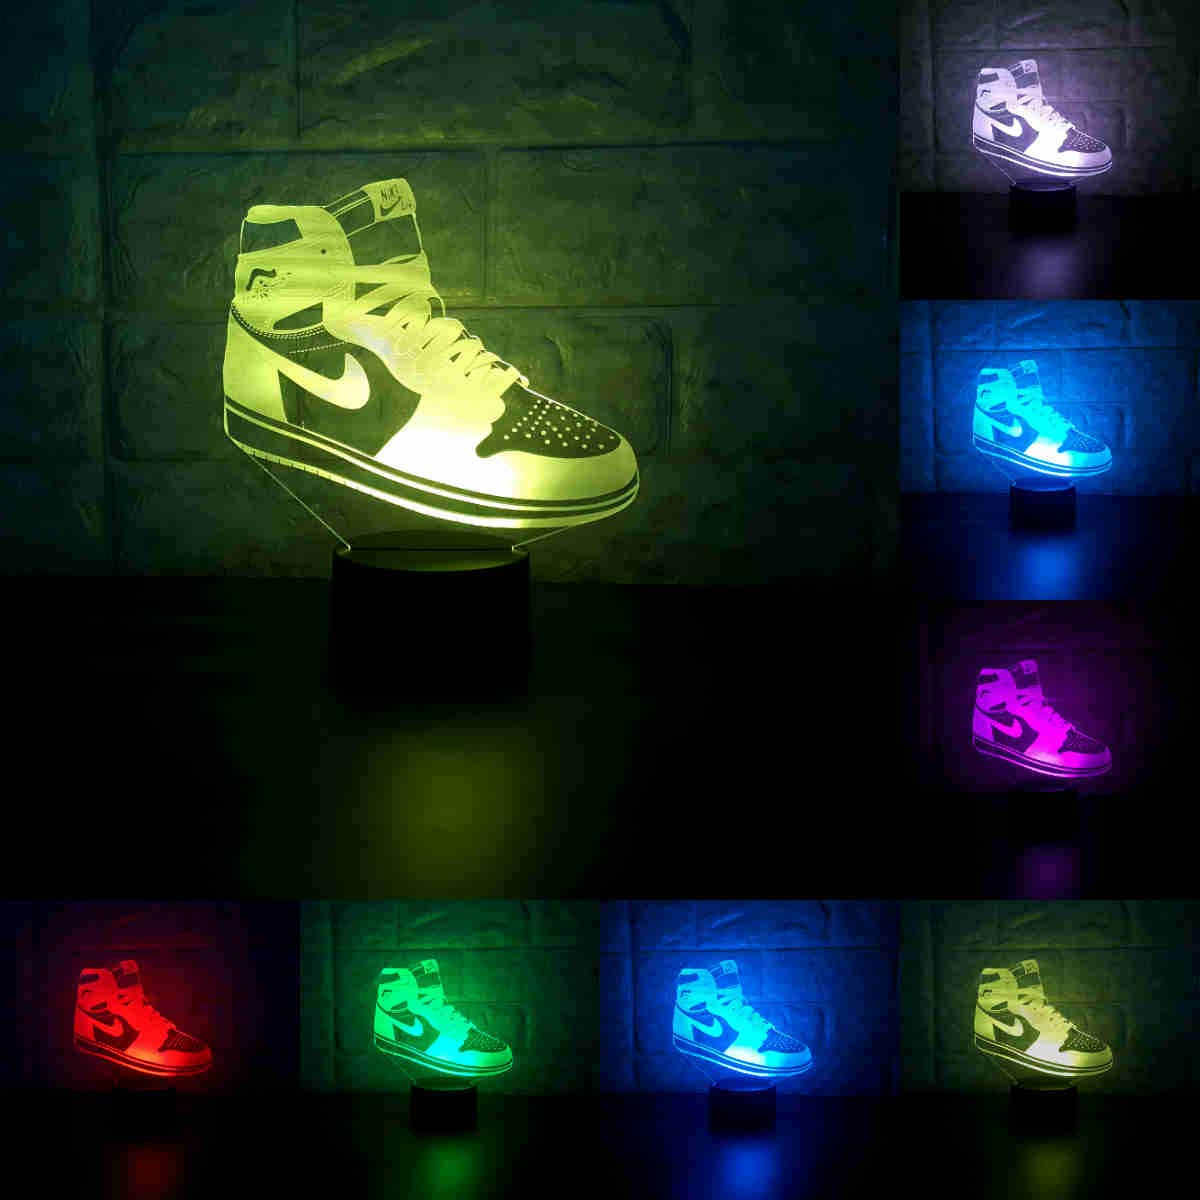 Sneakers 3D Lamp Table NightLight 7 Color Change Running Shoes LED Desk Light Touch Multicolored USB Power As Home Decoration Lights Tractor for Boys Kids (Touch) (Jordan 1)